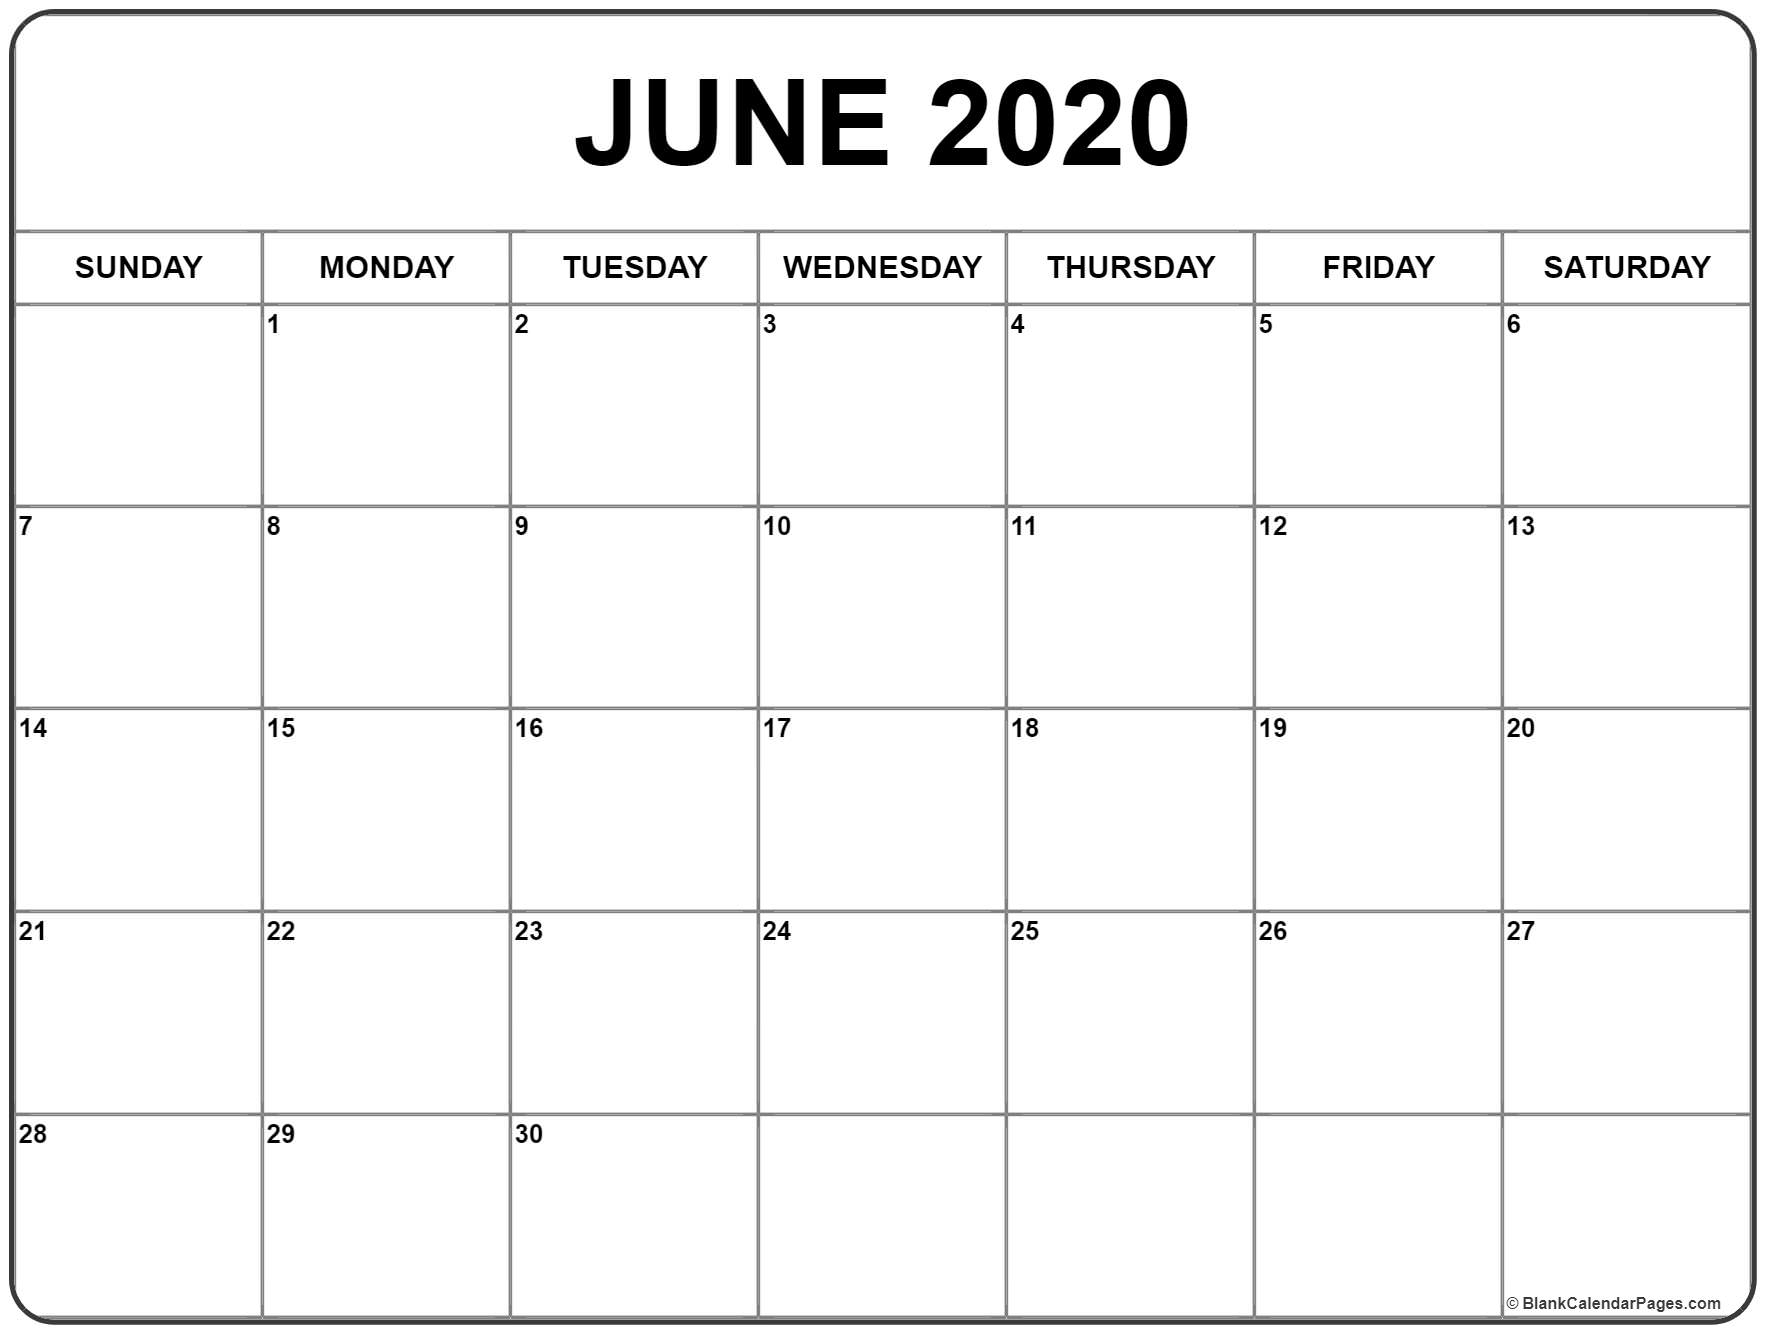 June 2020 Calendar | Free Printable Monthly Calendars in Free Calendar At A Glance 2020